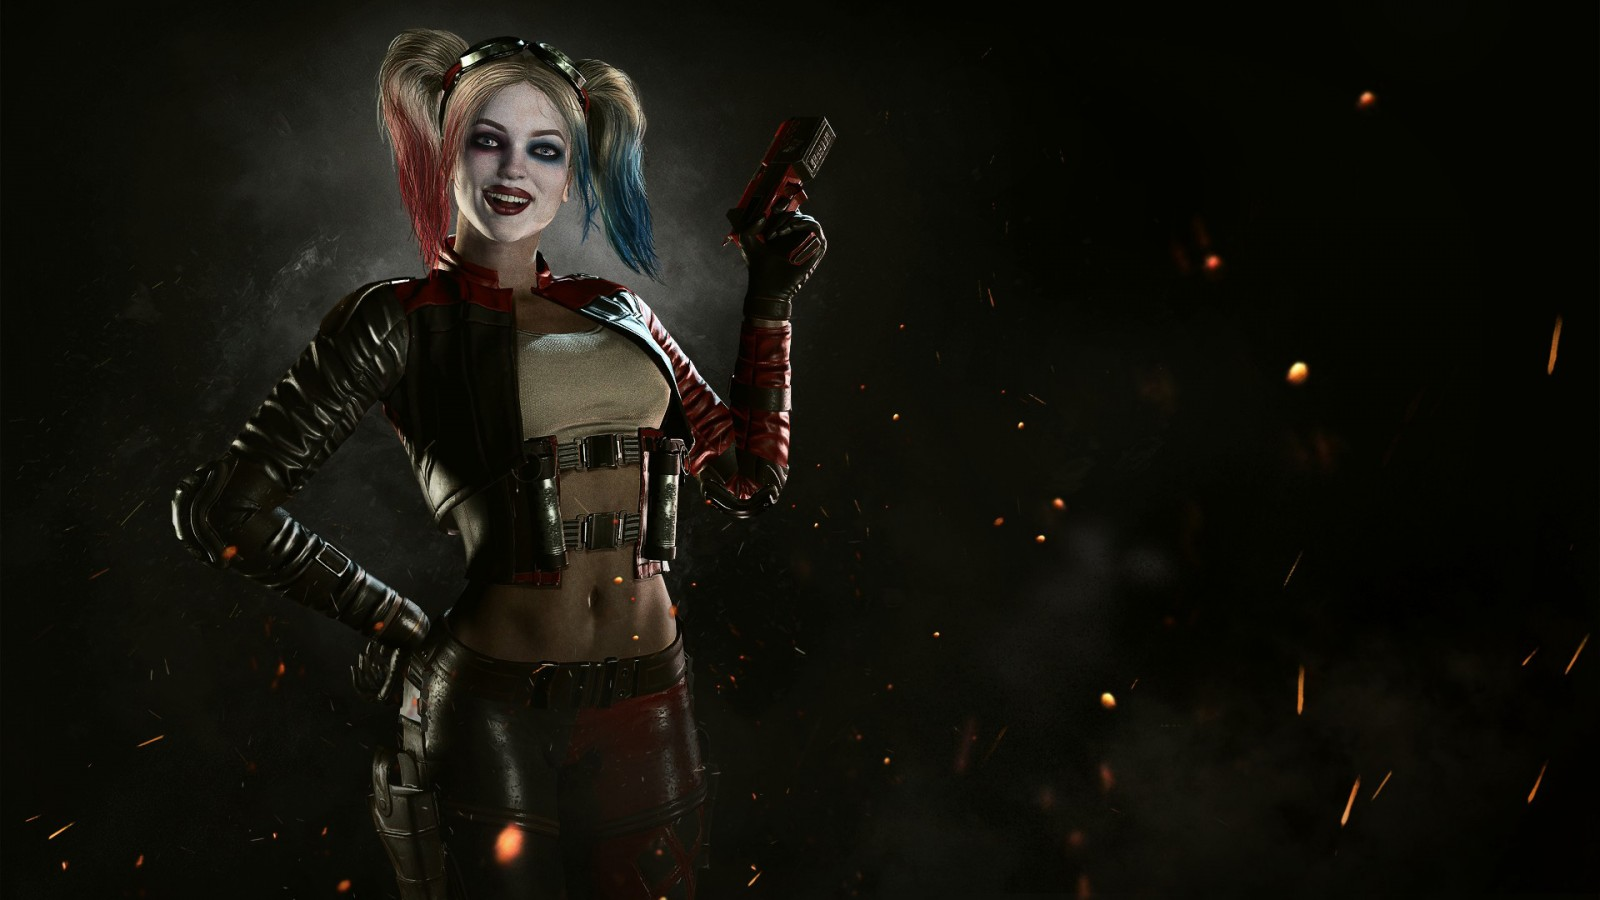 Angry Birds Wallpaper Hd Iphone Injustice 2 Harley Quinn Wallpapers Hd Wallpapers Id